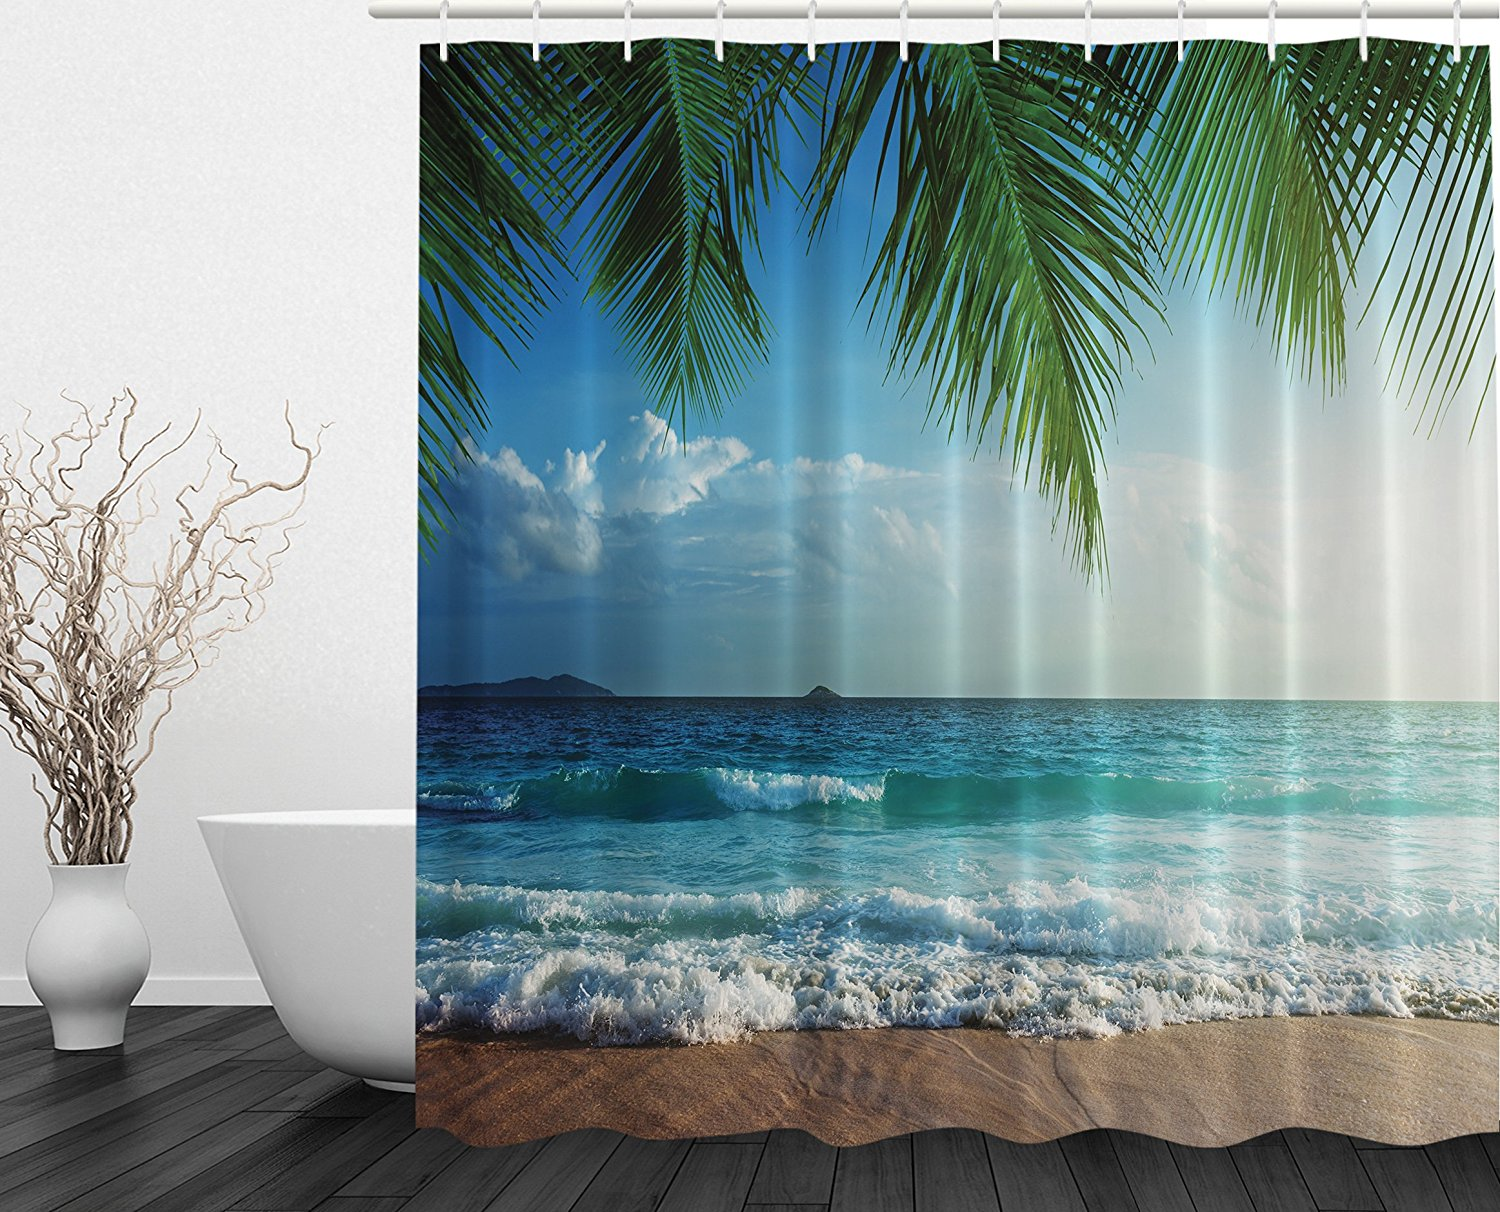 Palms Ocean Tropical Island Beach Decor Maldives High Resolution Photography Home Postcard Decor Bathroom